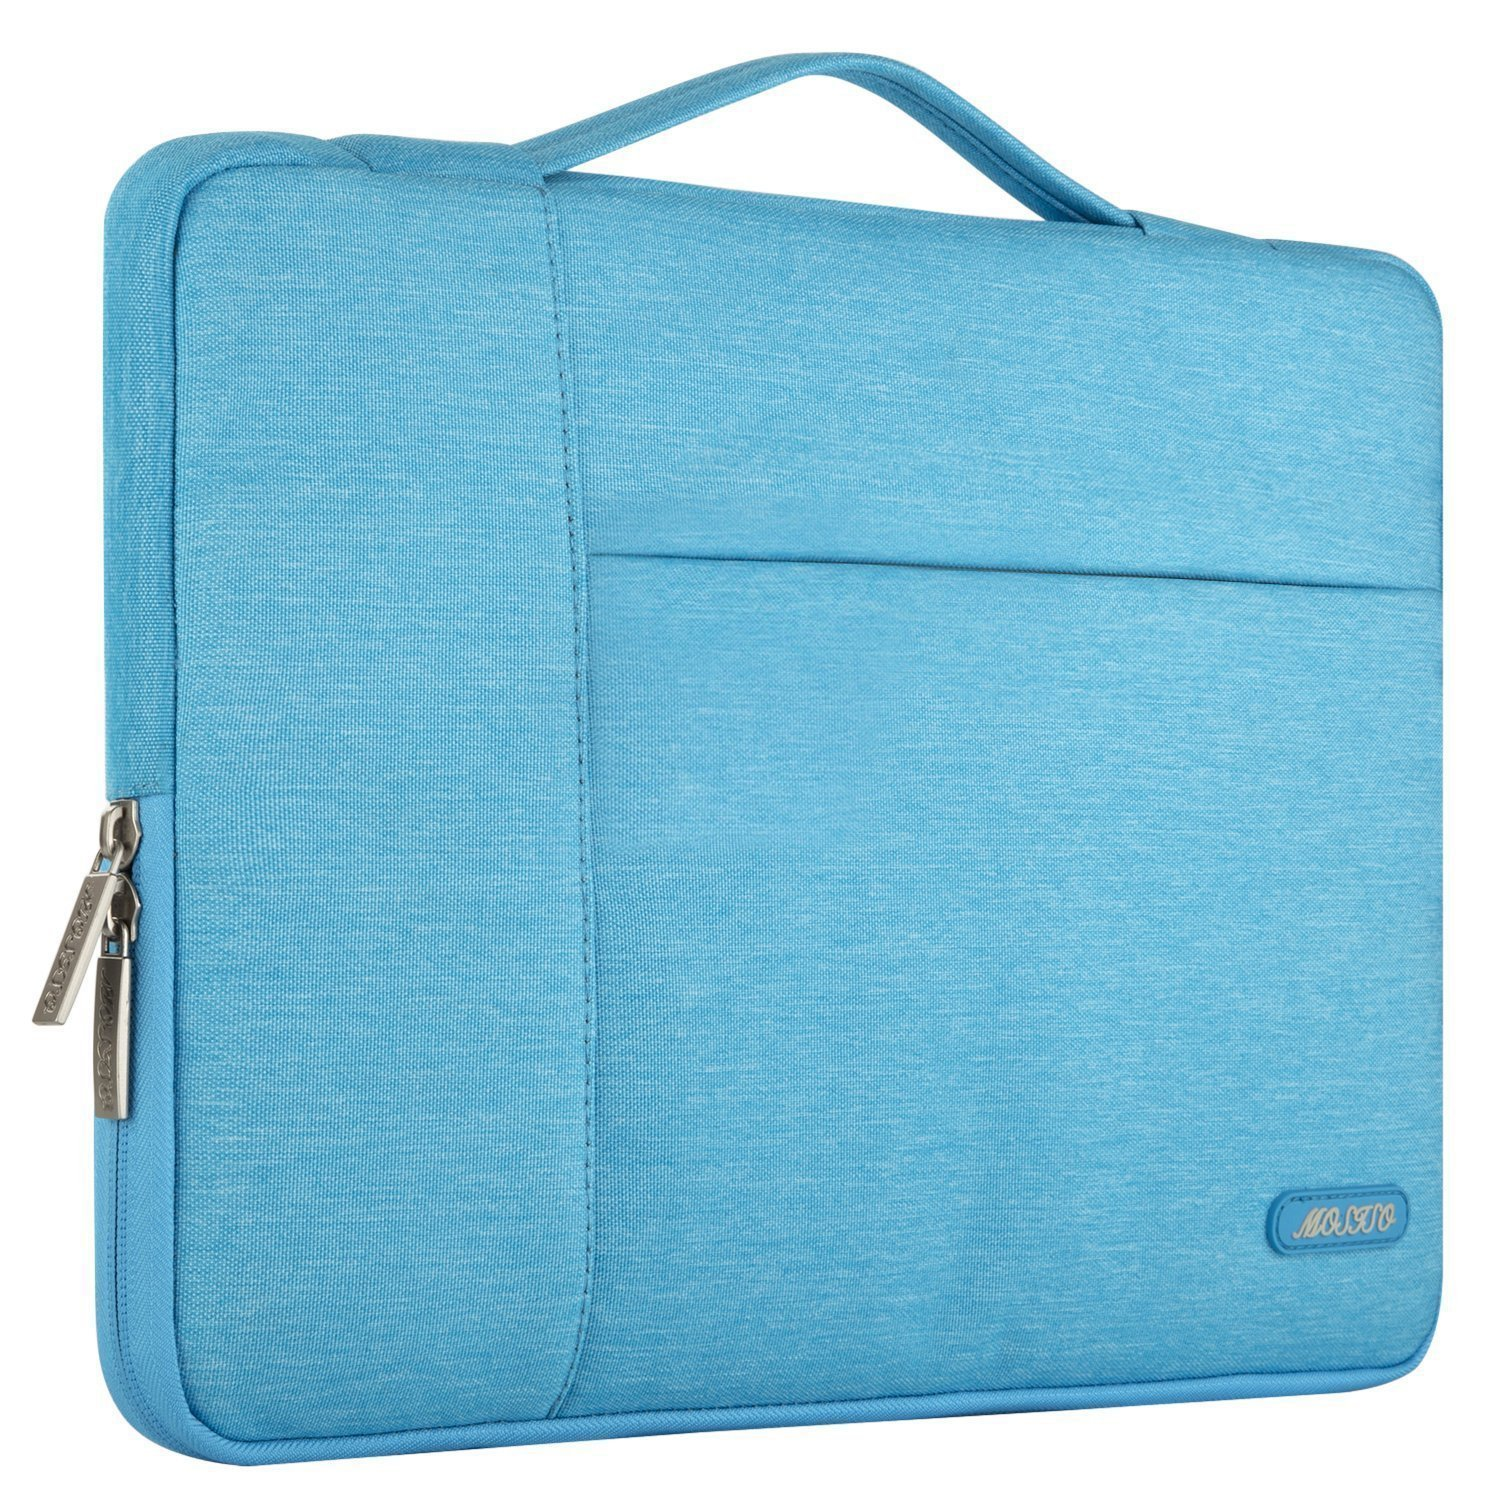 Bleu Marin Laptop Sleeve Multifonctionnel Sac Main Polyester MOSISO Housse Compatible MacBook Air 13 2018 A1932//MacBook Pro 13 A1989 A1706 A1708 USB-C 2018 2017 2016,Surface Pro 6//5//4//3